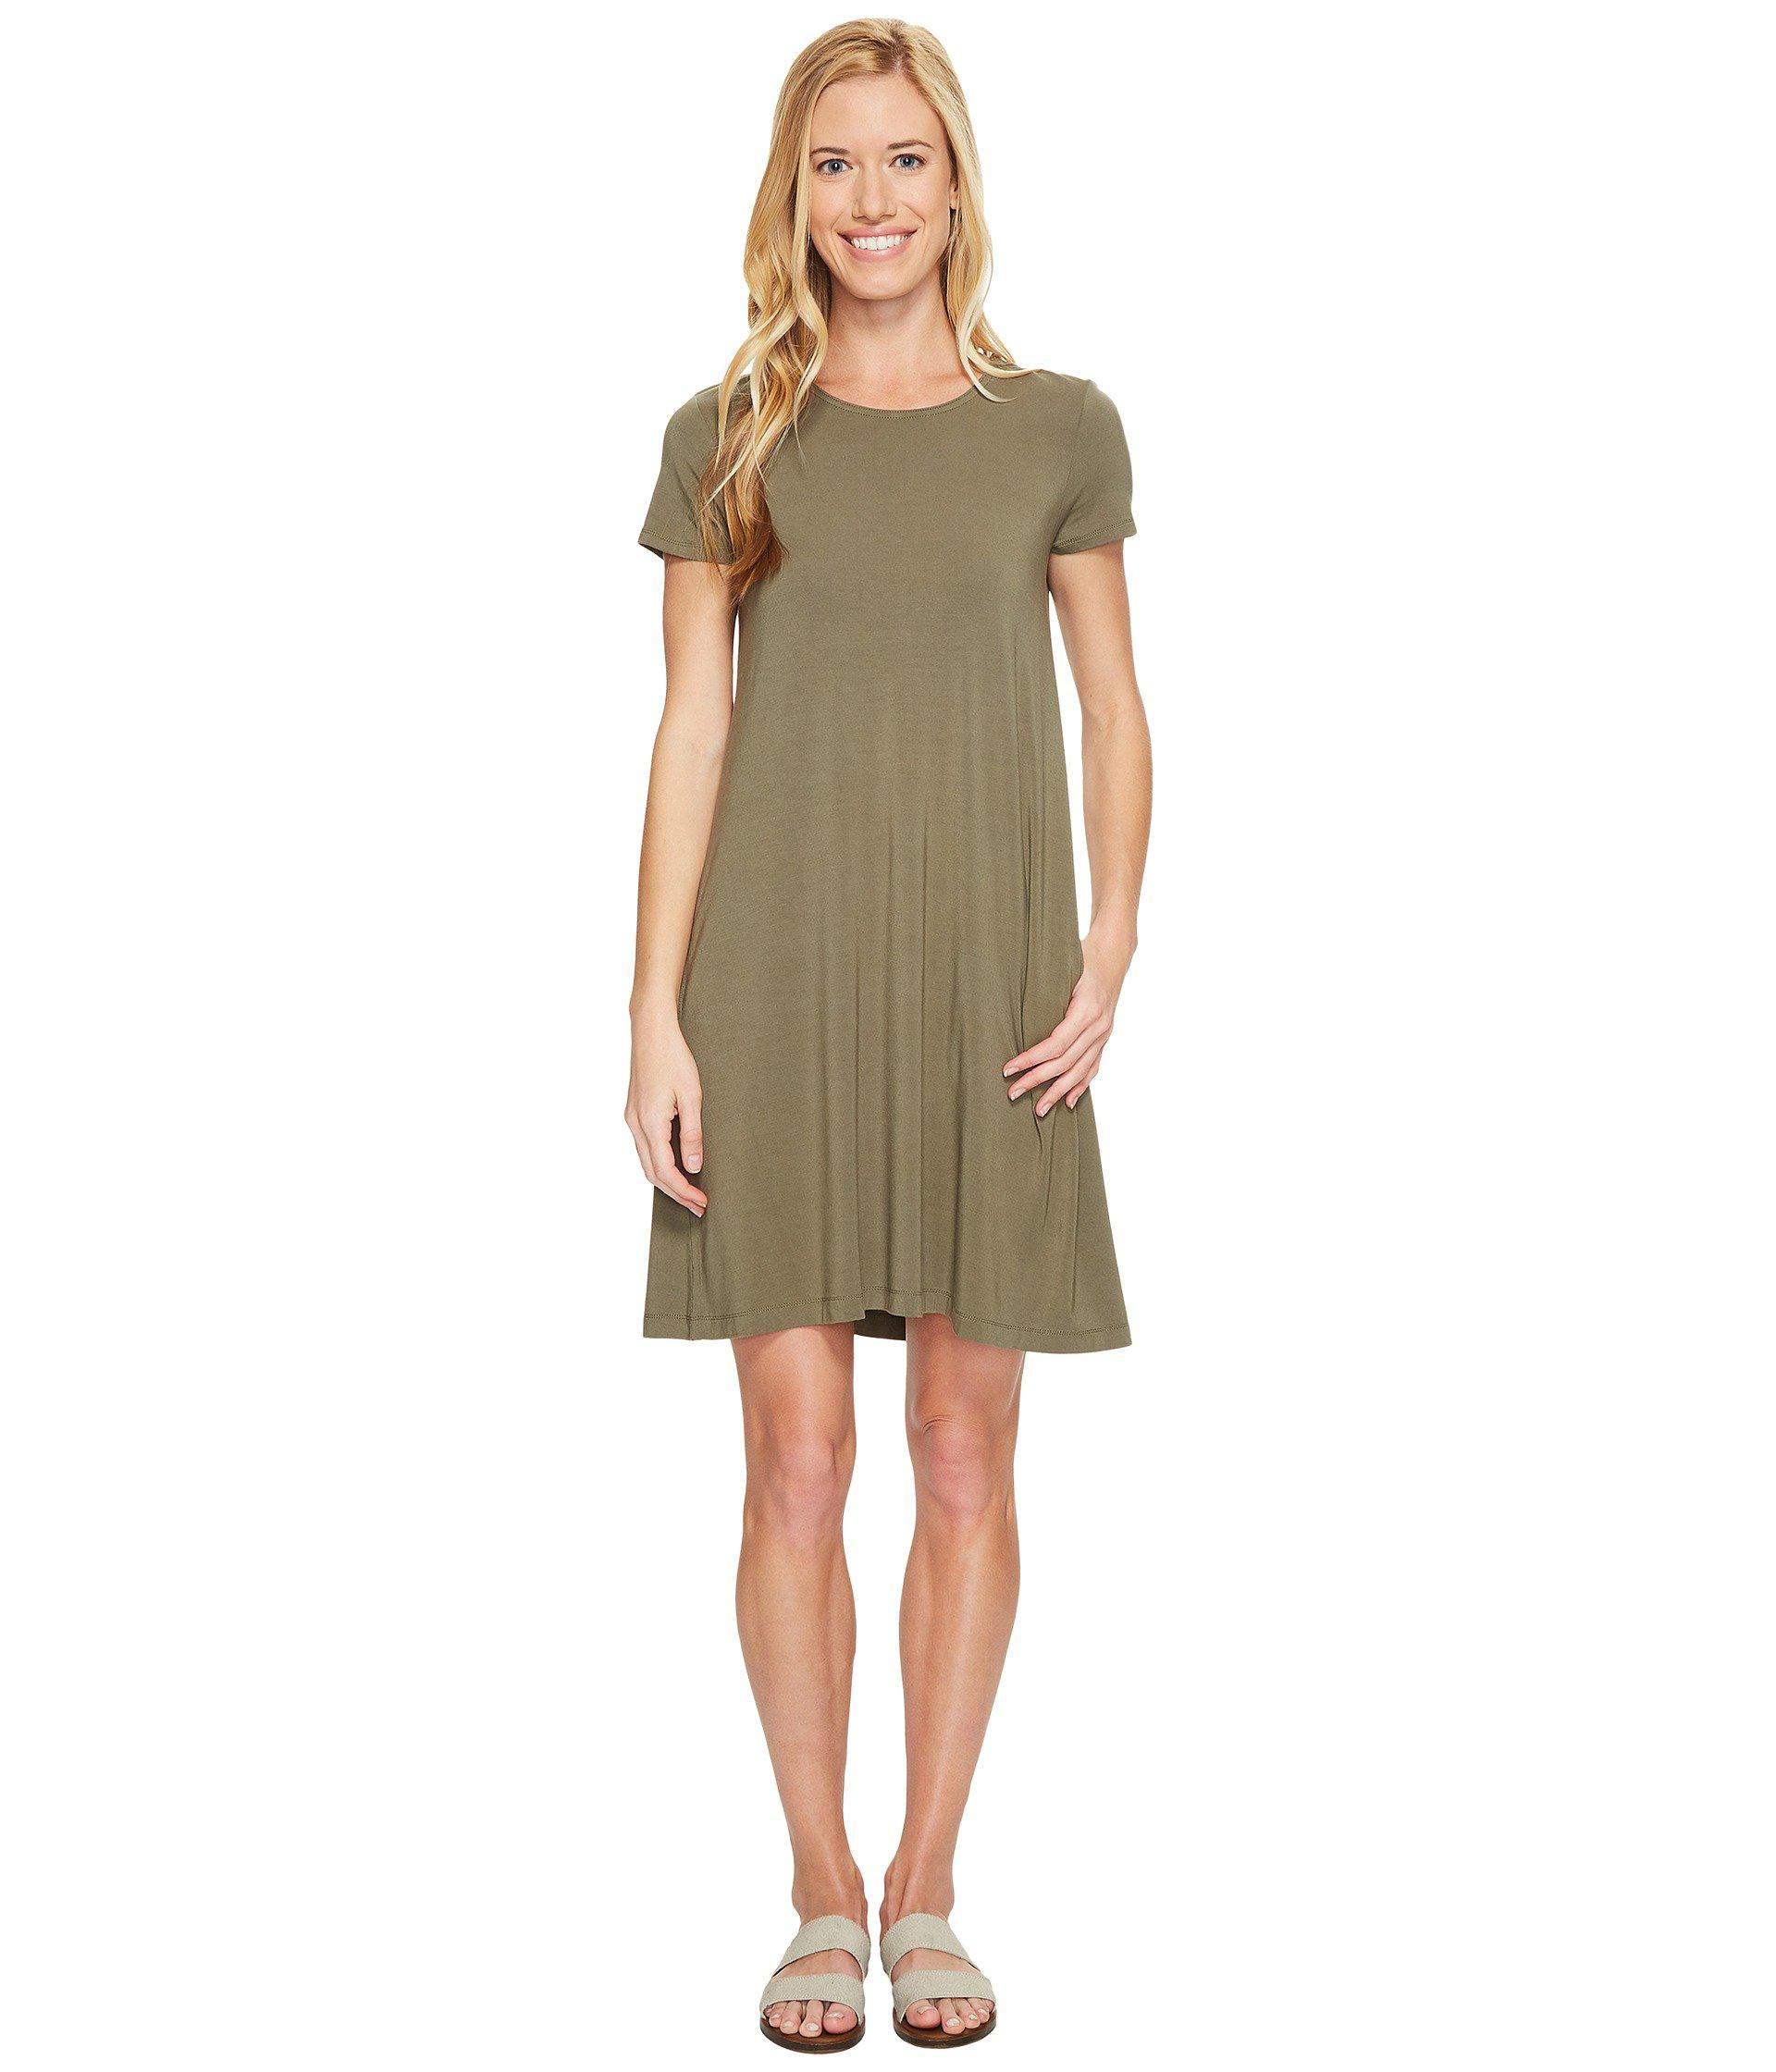 2497ad1f52 Lyst - United By Blue Ridley Swing Dress in Green